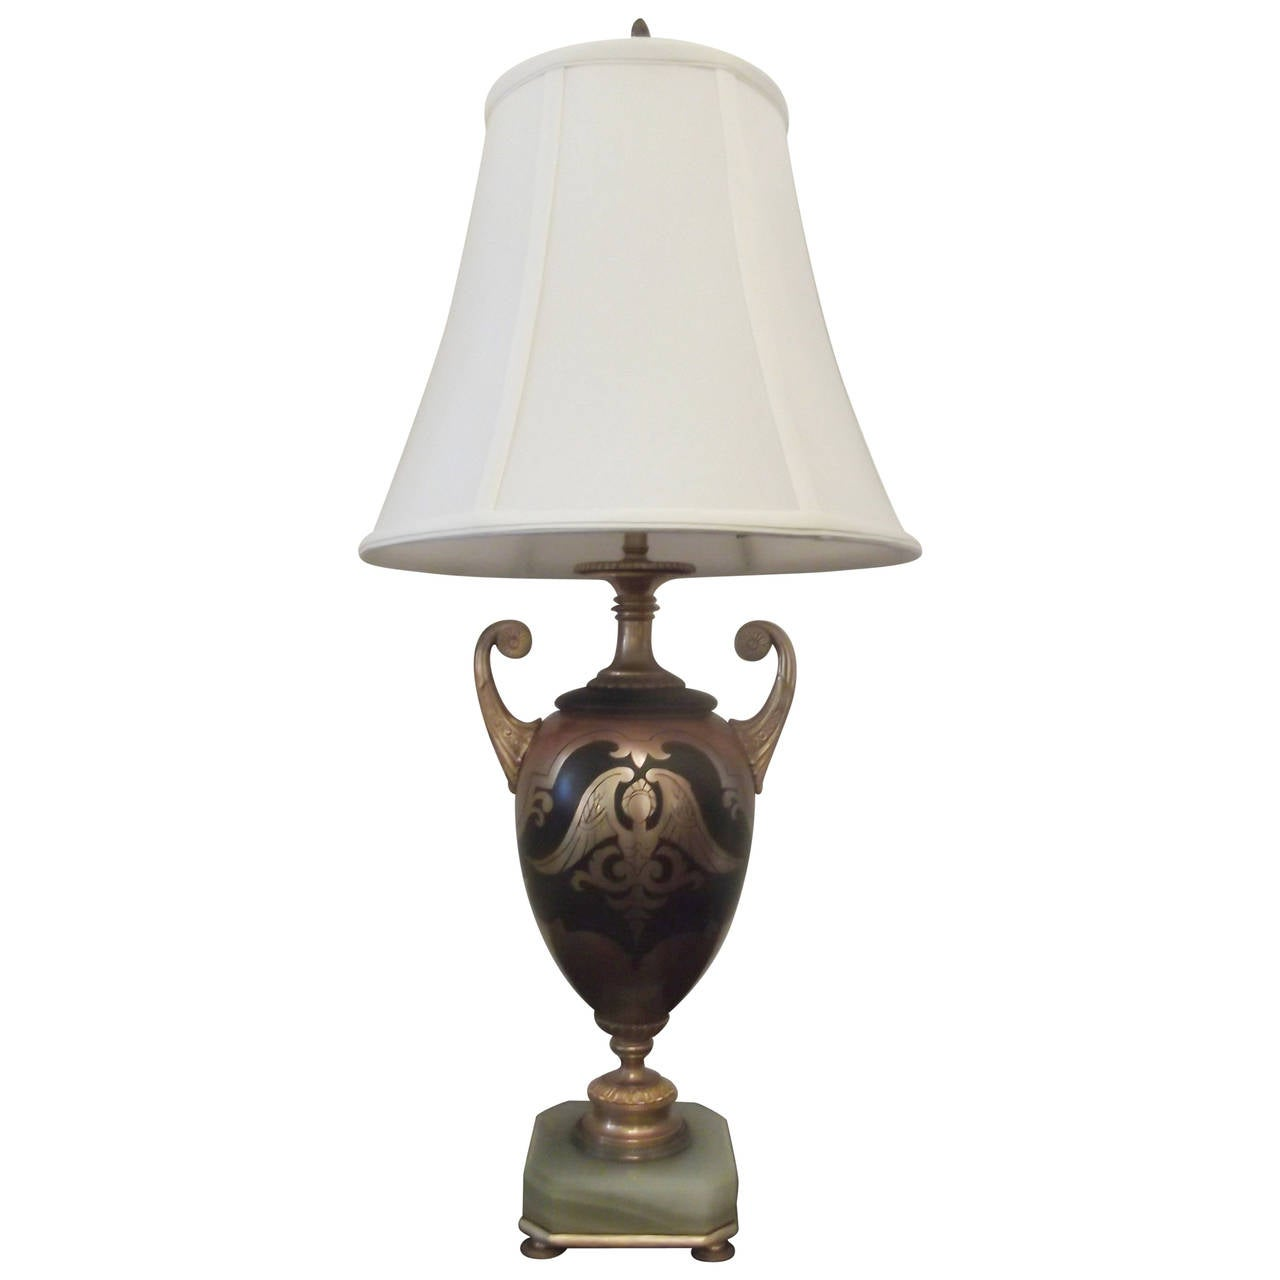 Antique Urn Table Lamp With Onyx Base For Sale At 1stdibs